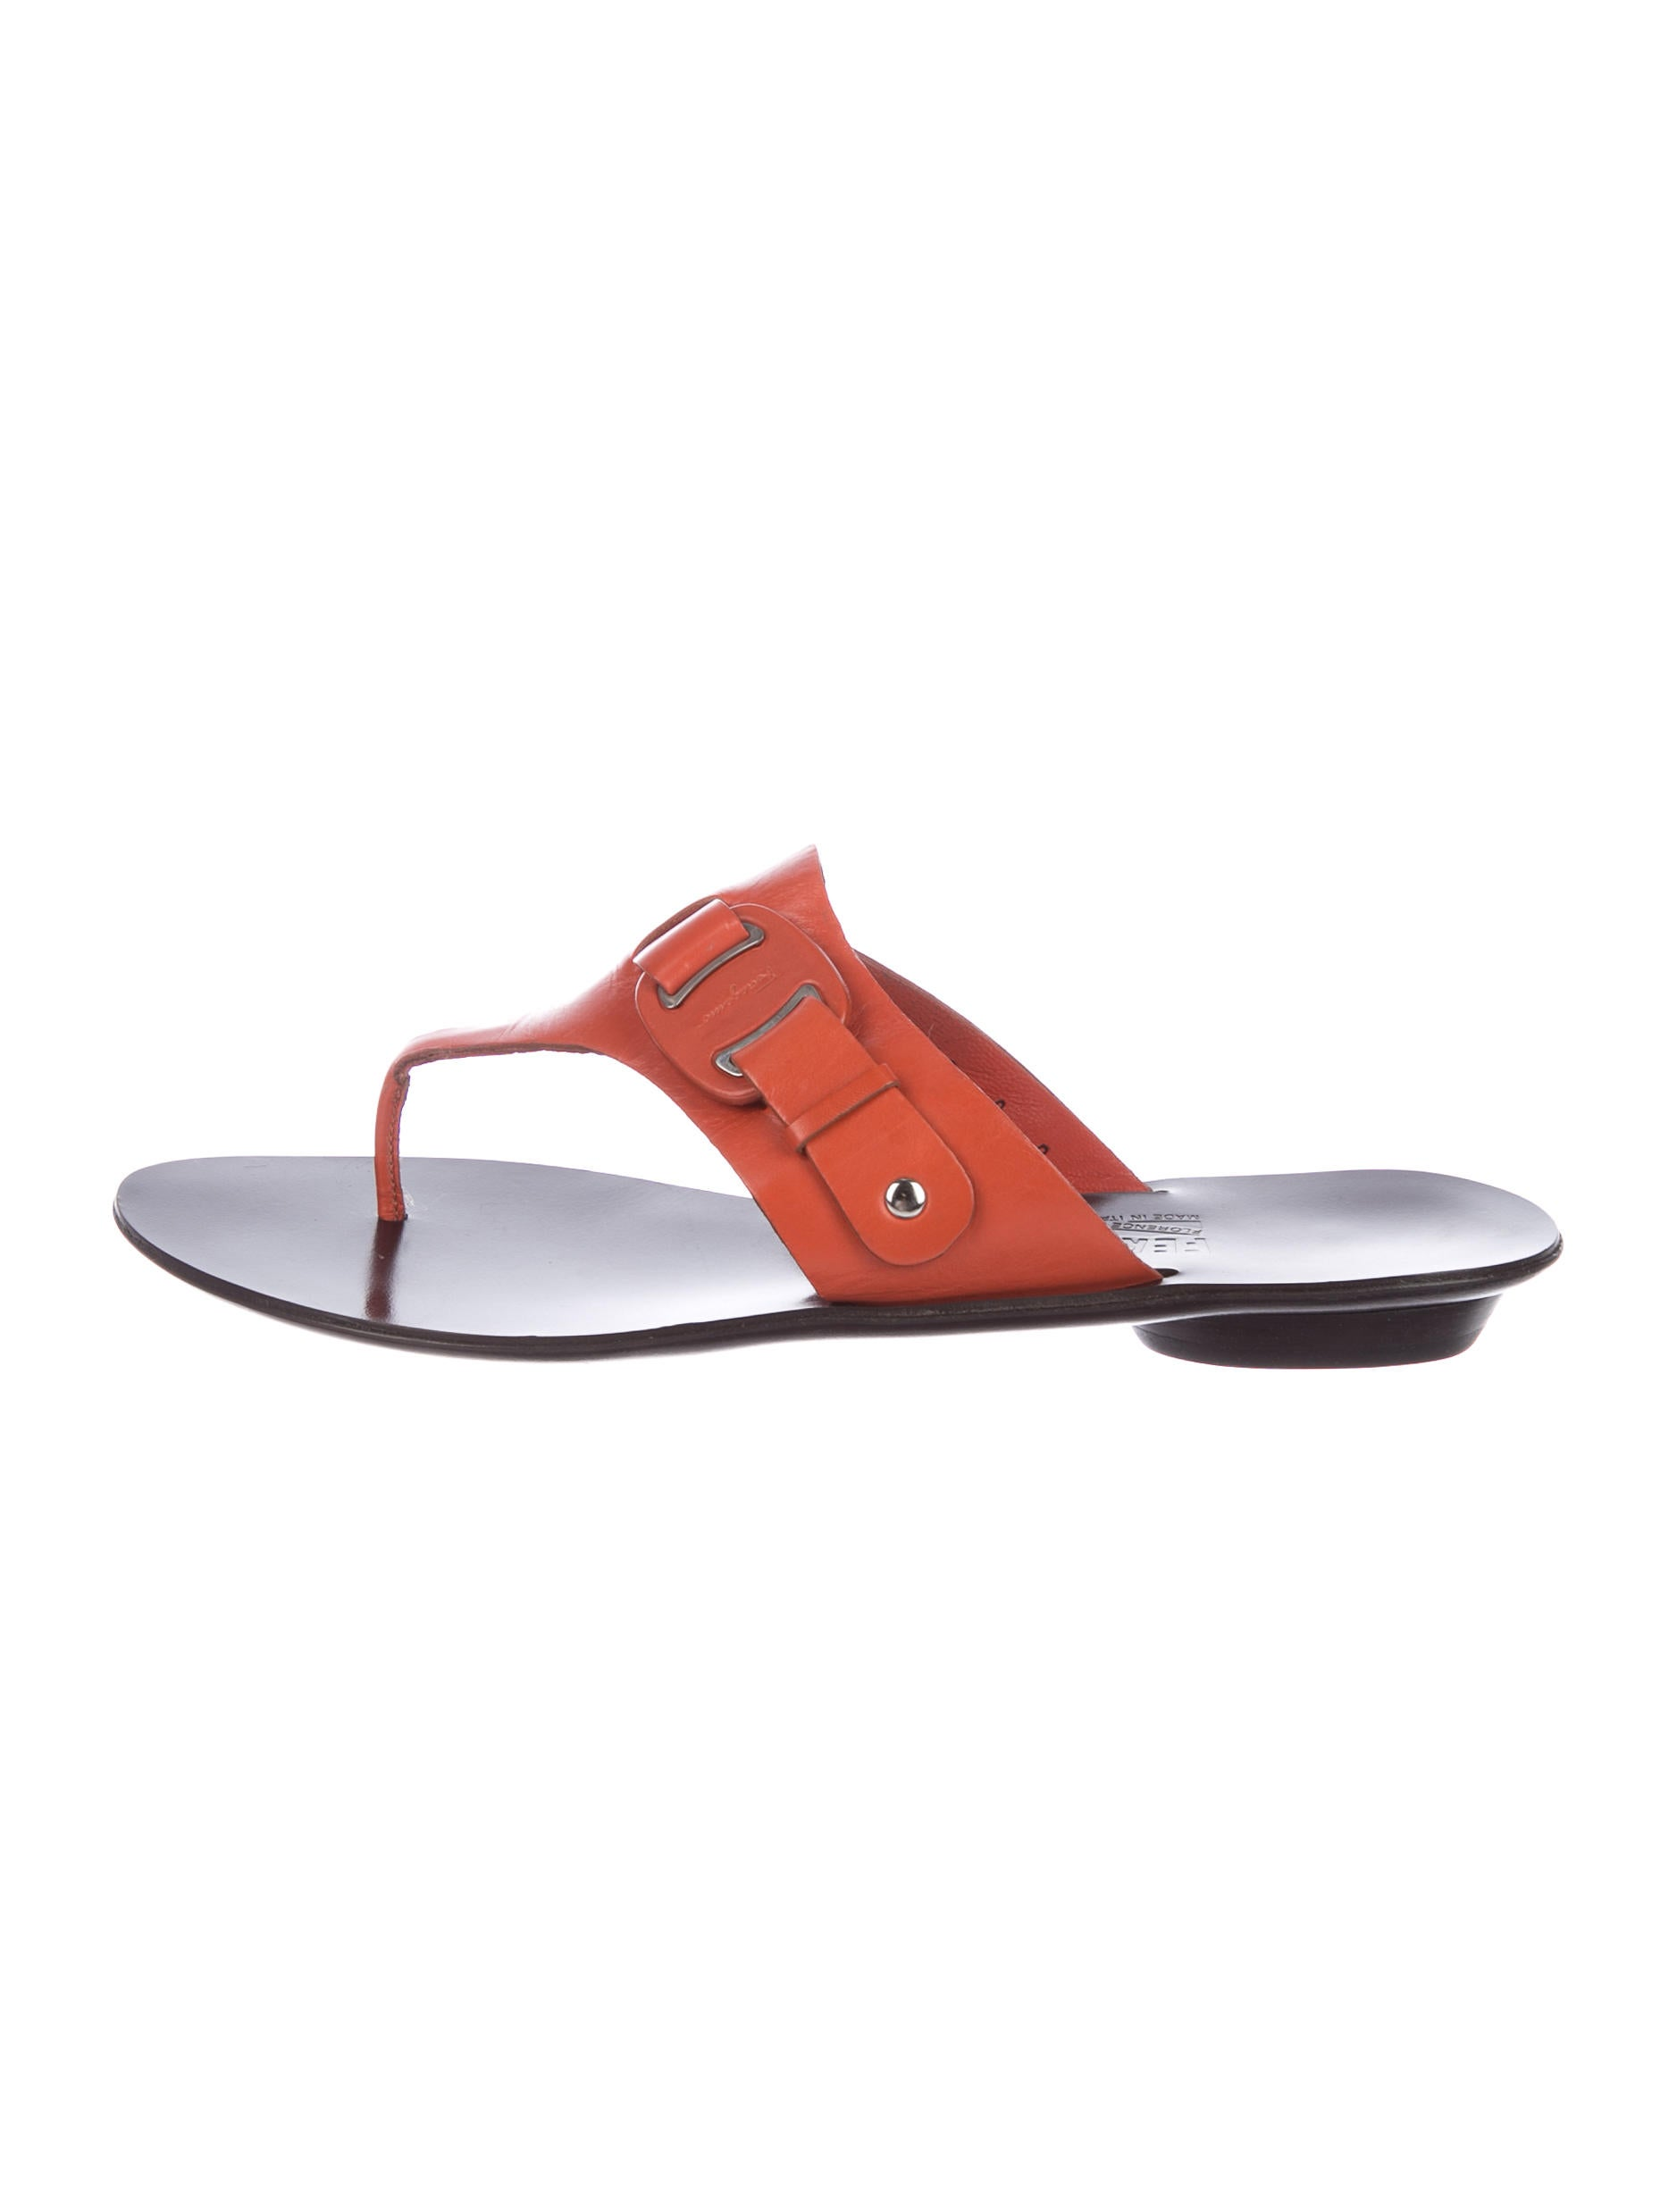 get to buy sale online popular cheap online Salvatore Ferragamo Cara Thong Sandals outlet buy buy cheap wide range of 14Gy5GYDEf